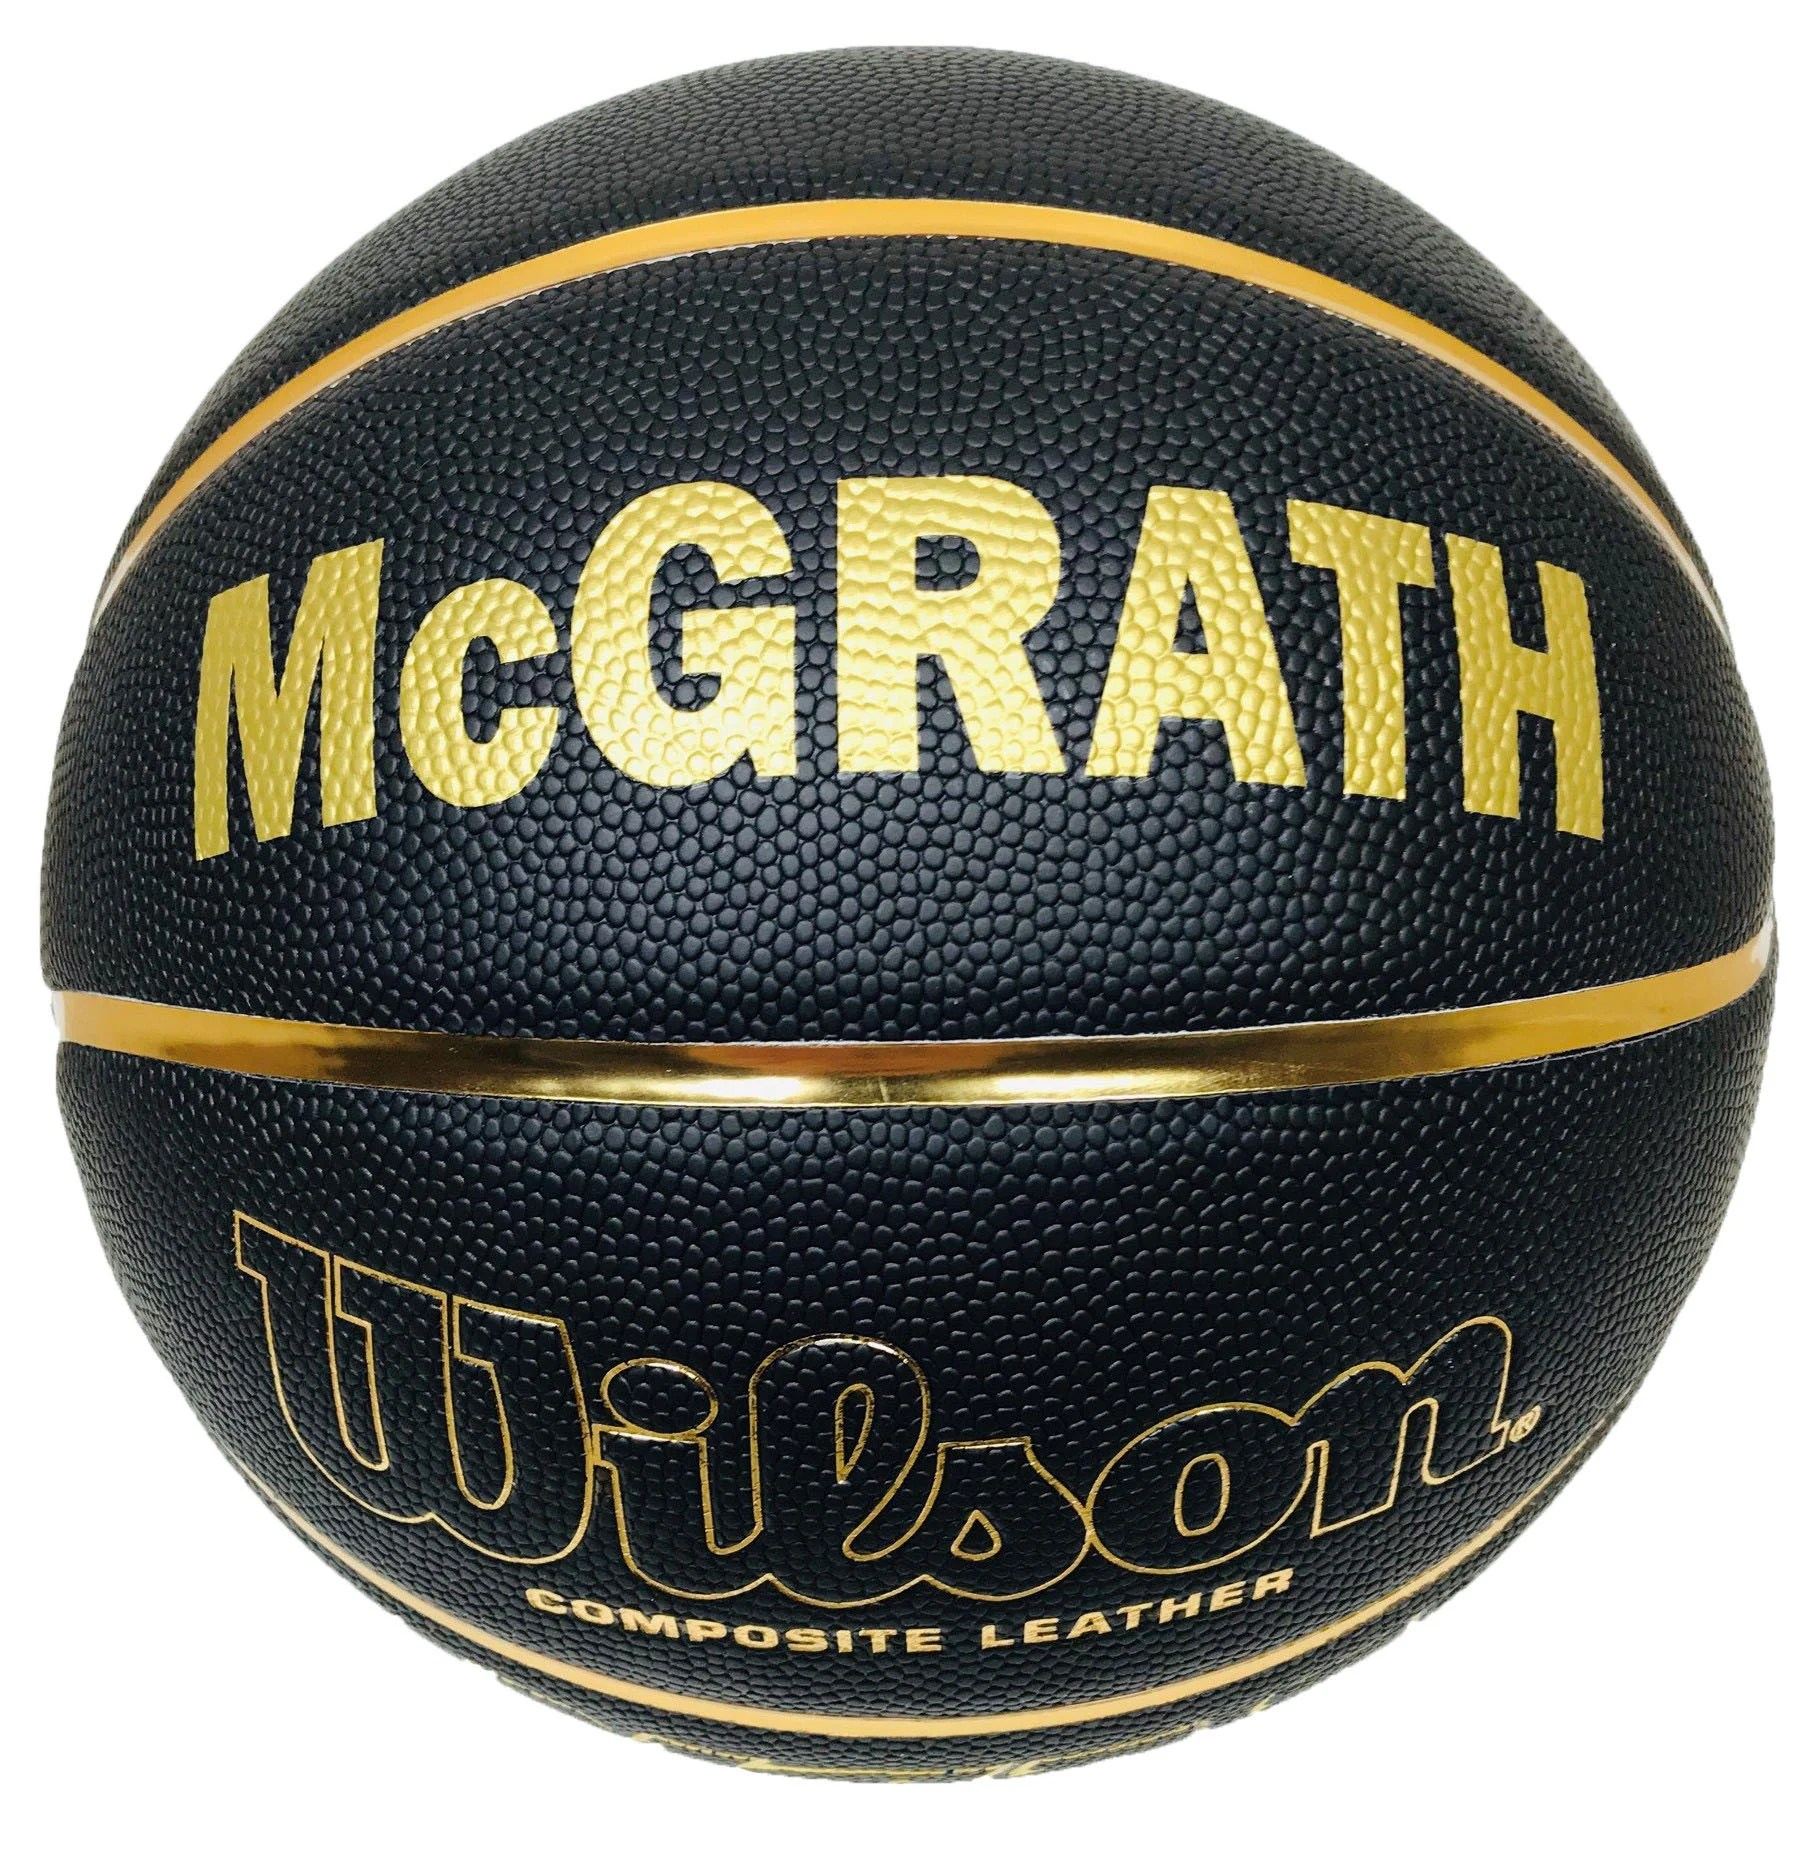 Customized Personalized Wilson NCAA Black and Gold Basketball image 1